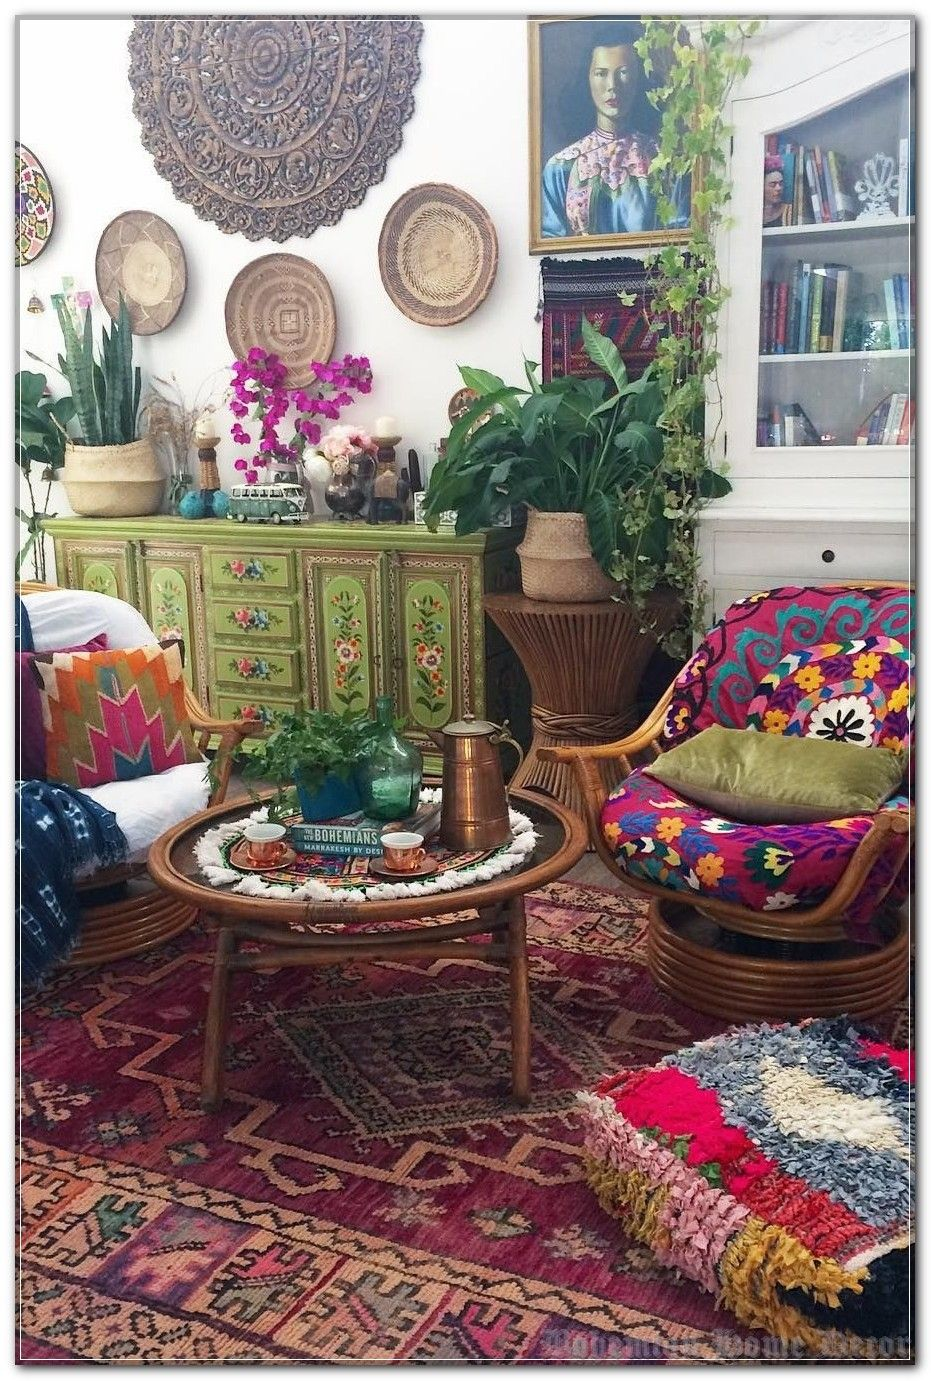 10 Ways To Reinvent Your Bohemian Home Decor